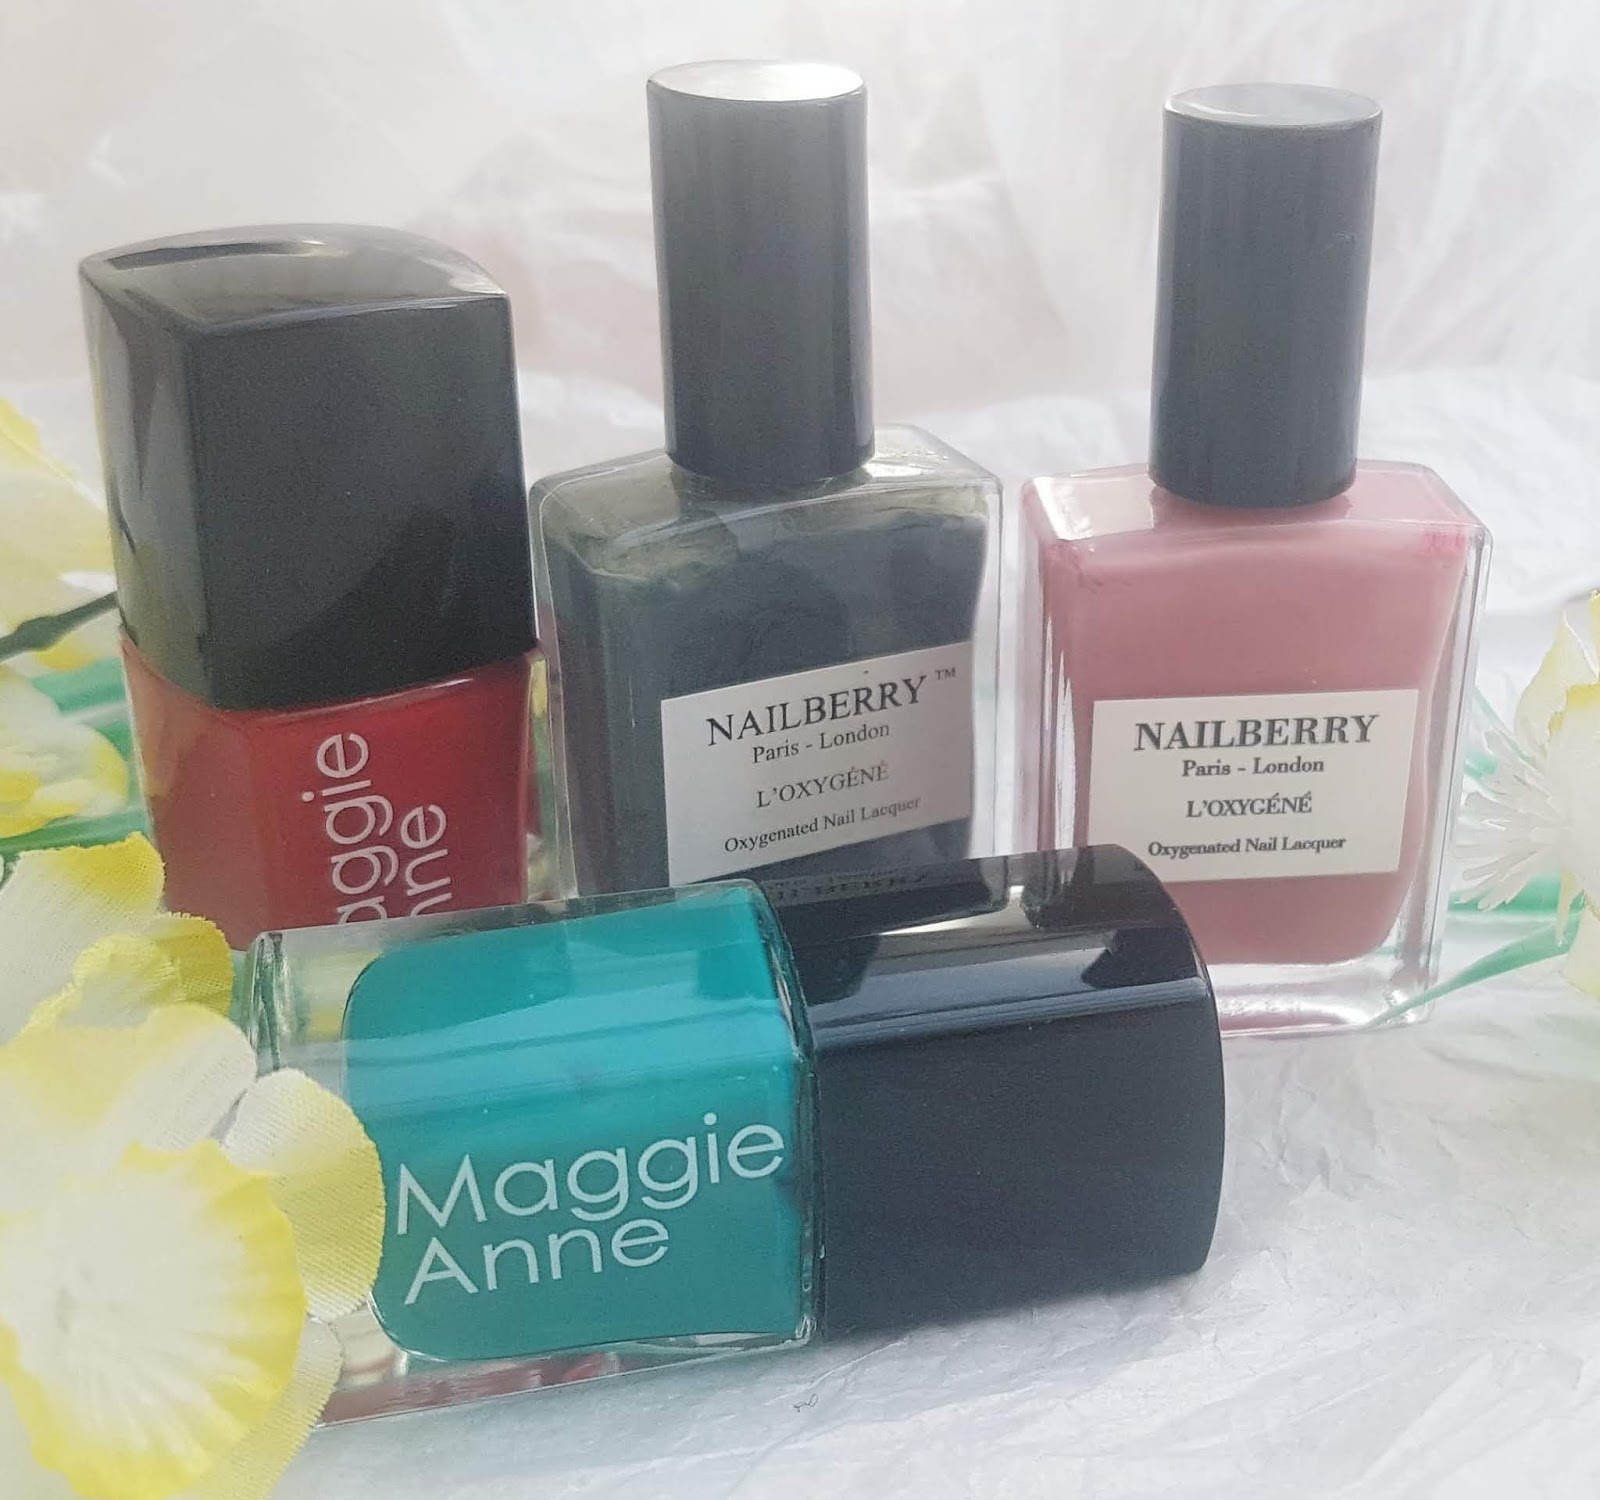 Maggie Anne and Nailberry Nail Polish - Best Makeup of 2019